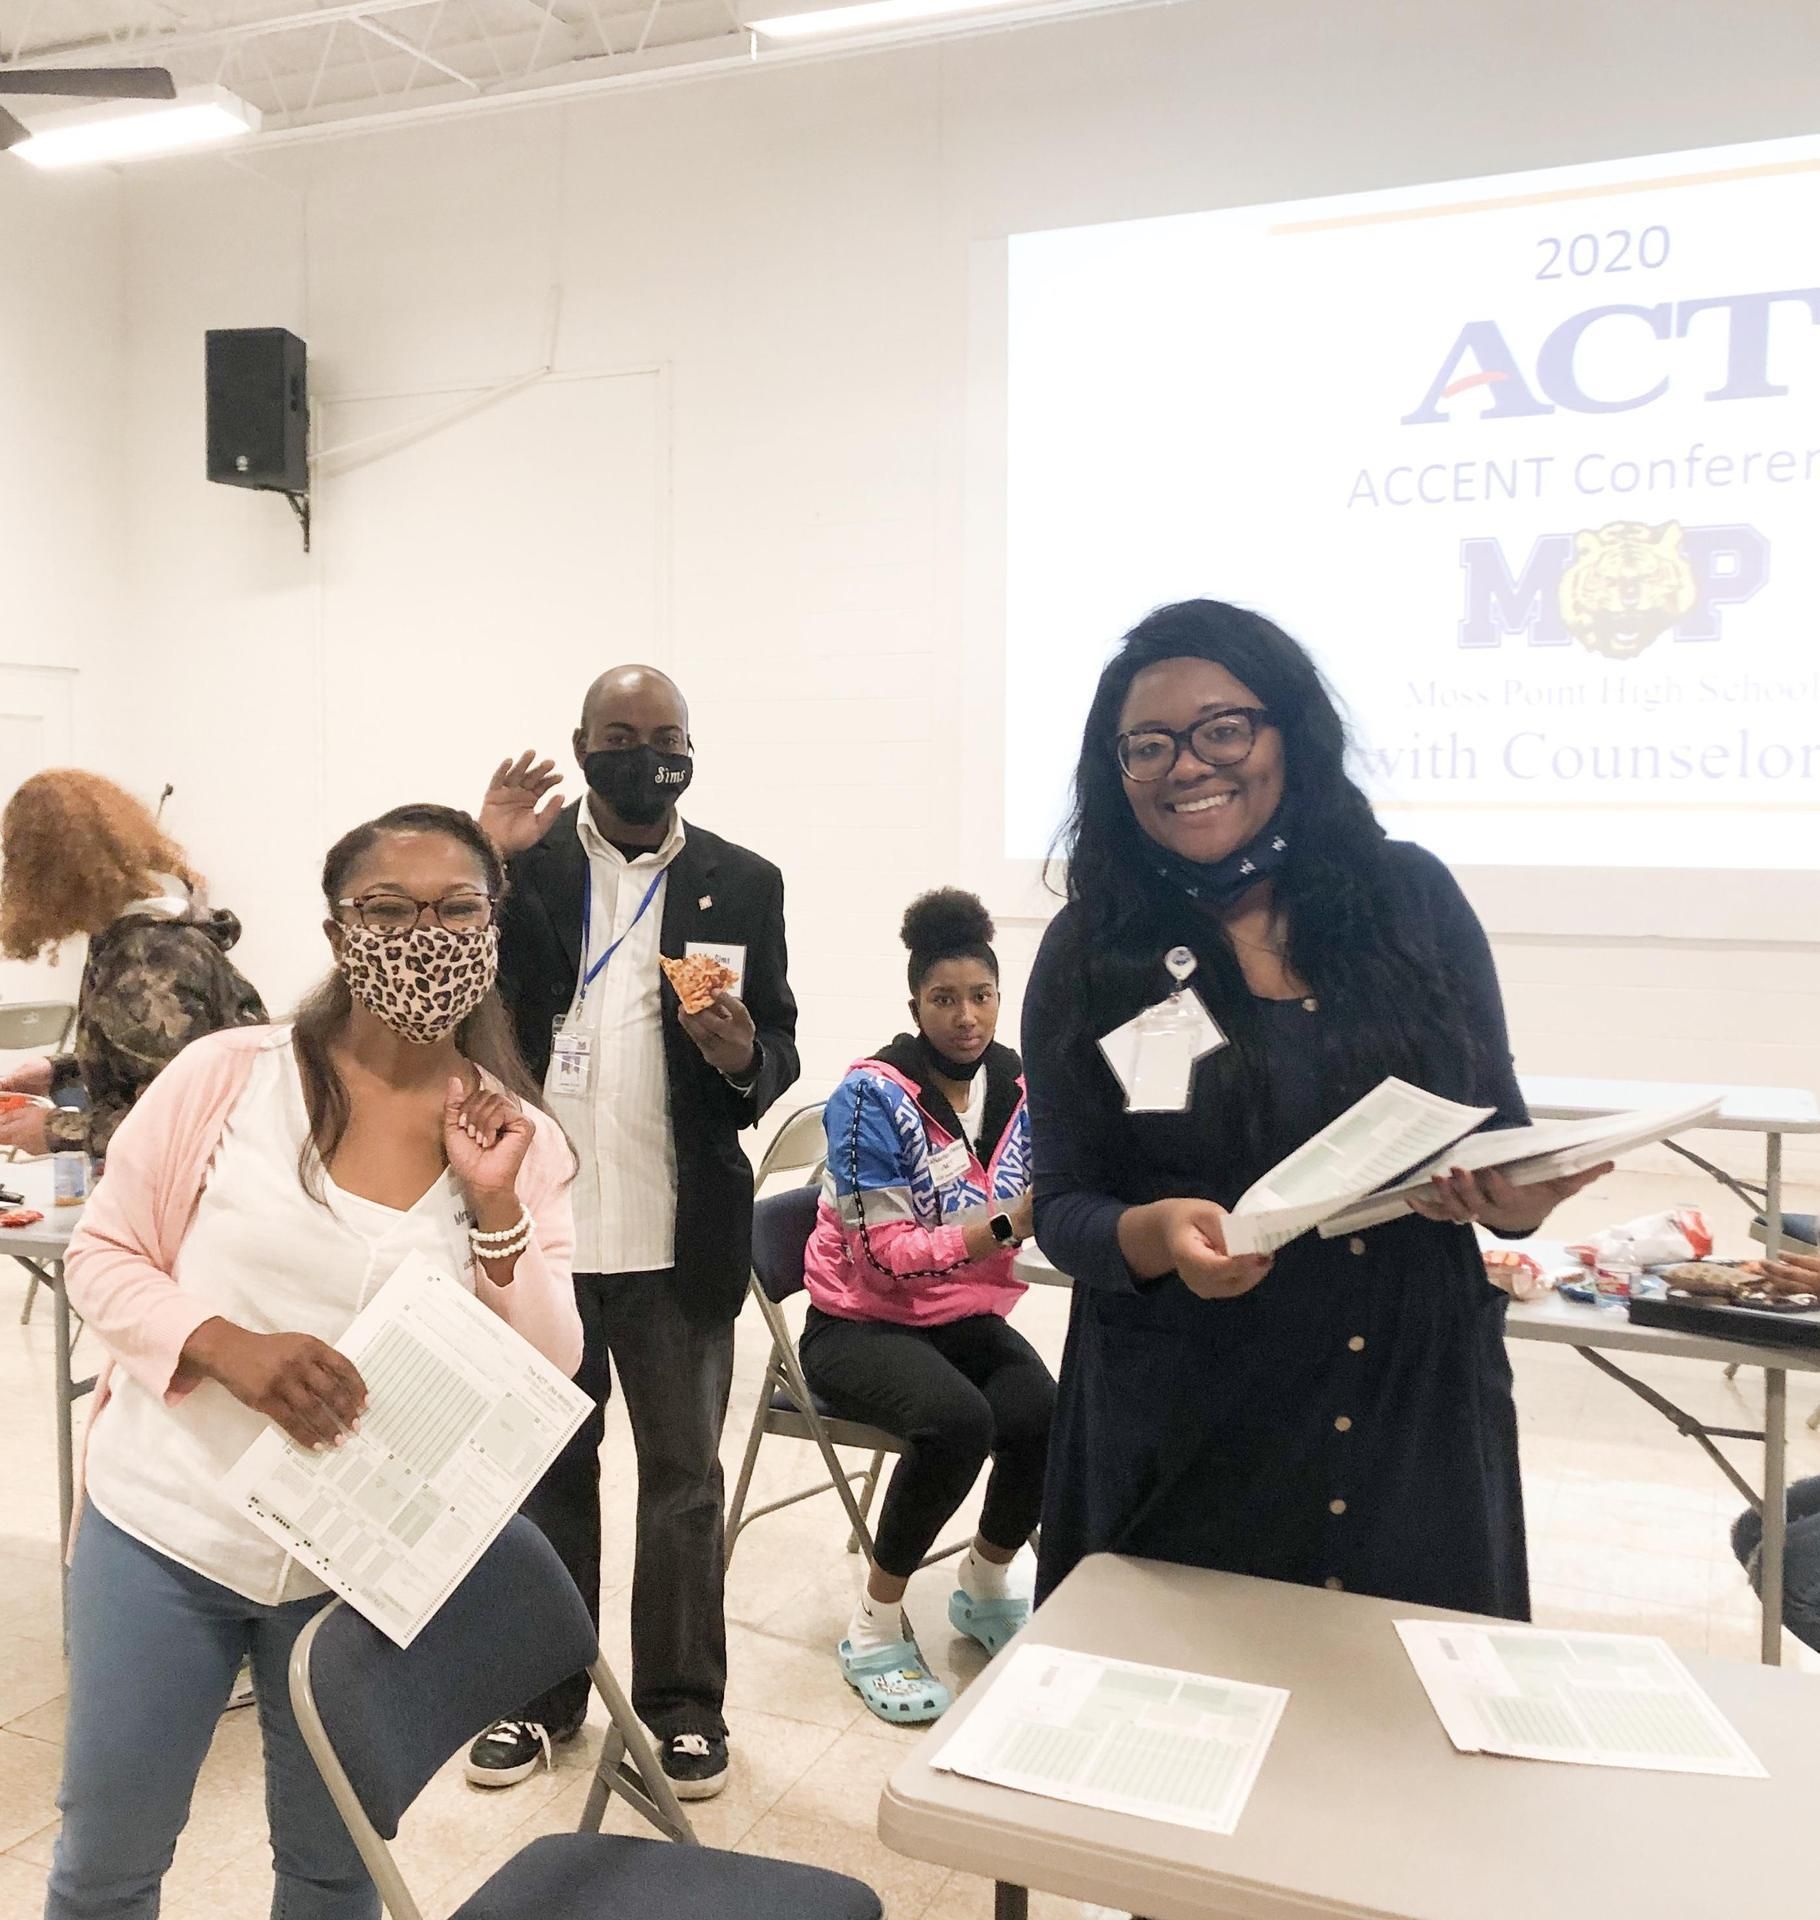 2020 ACT Accent Conference